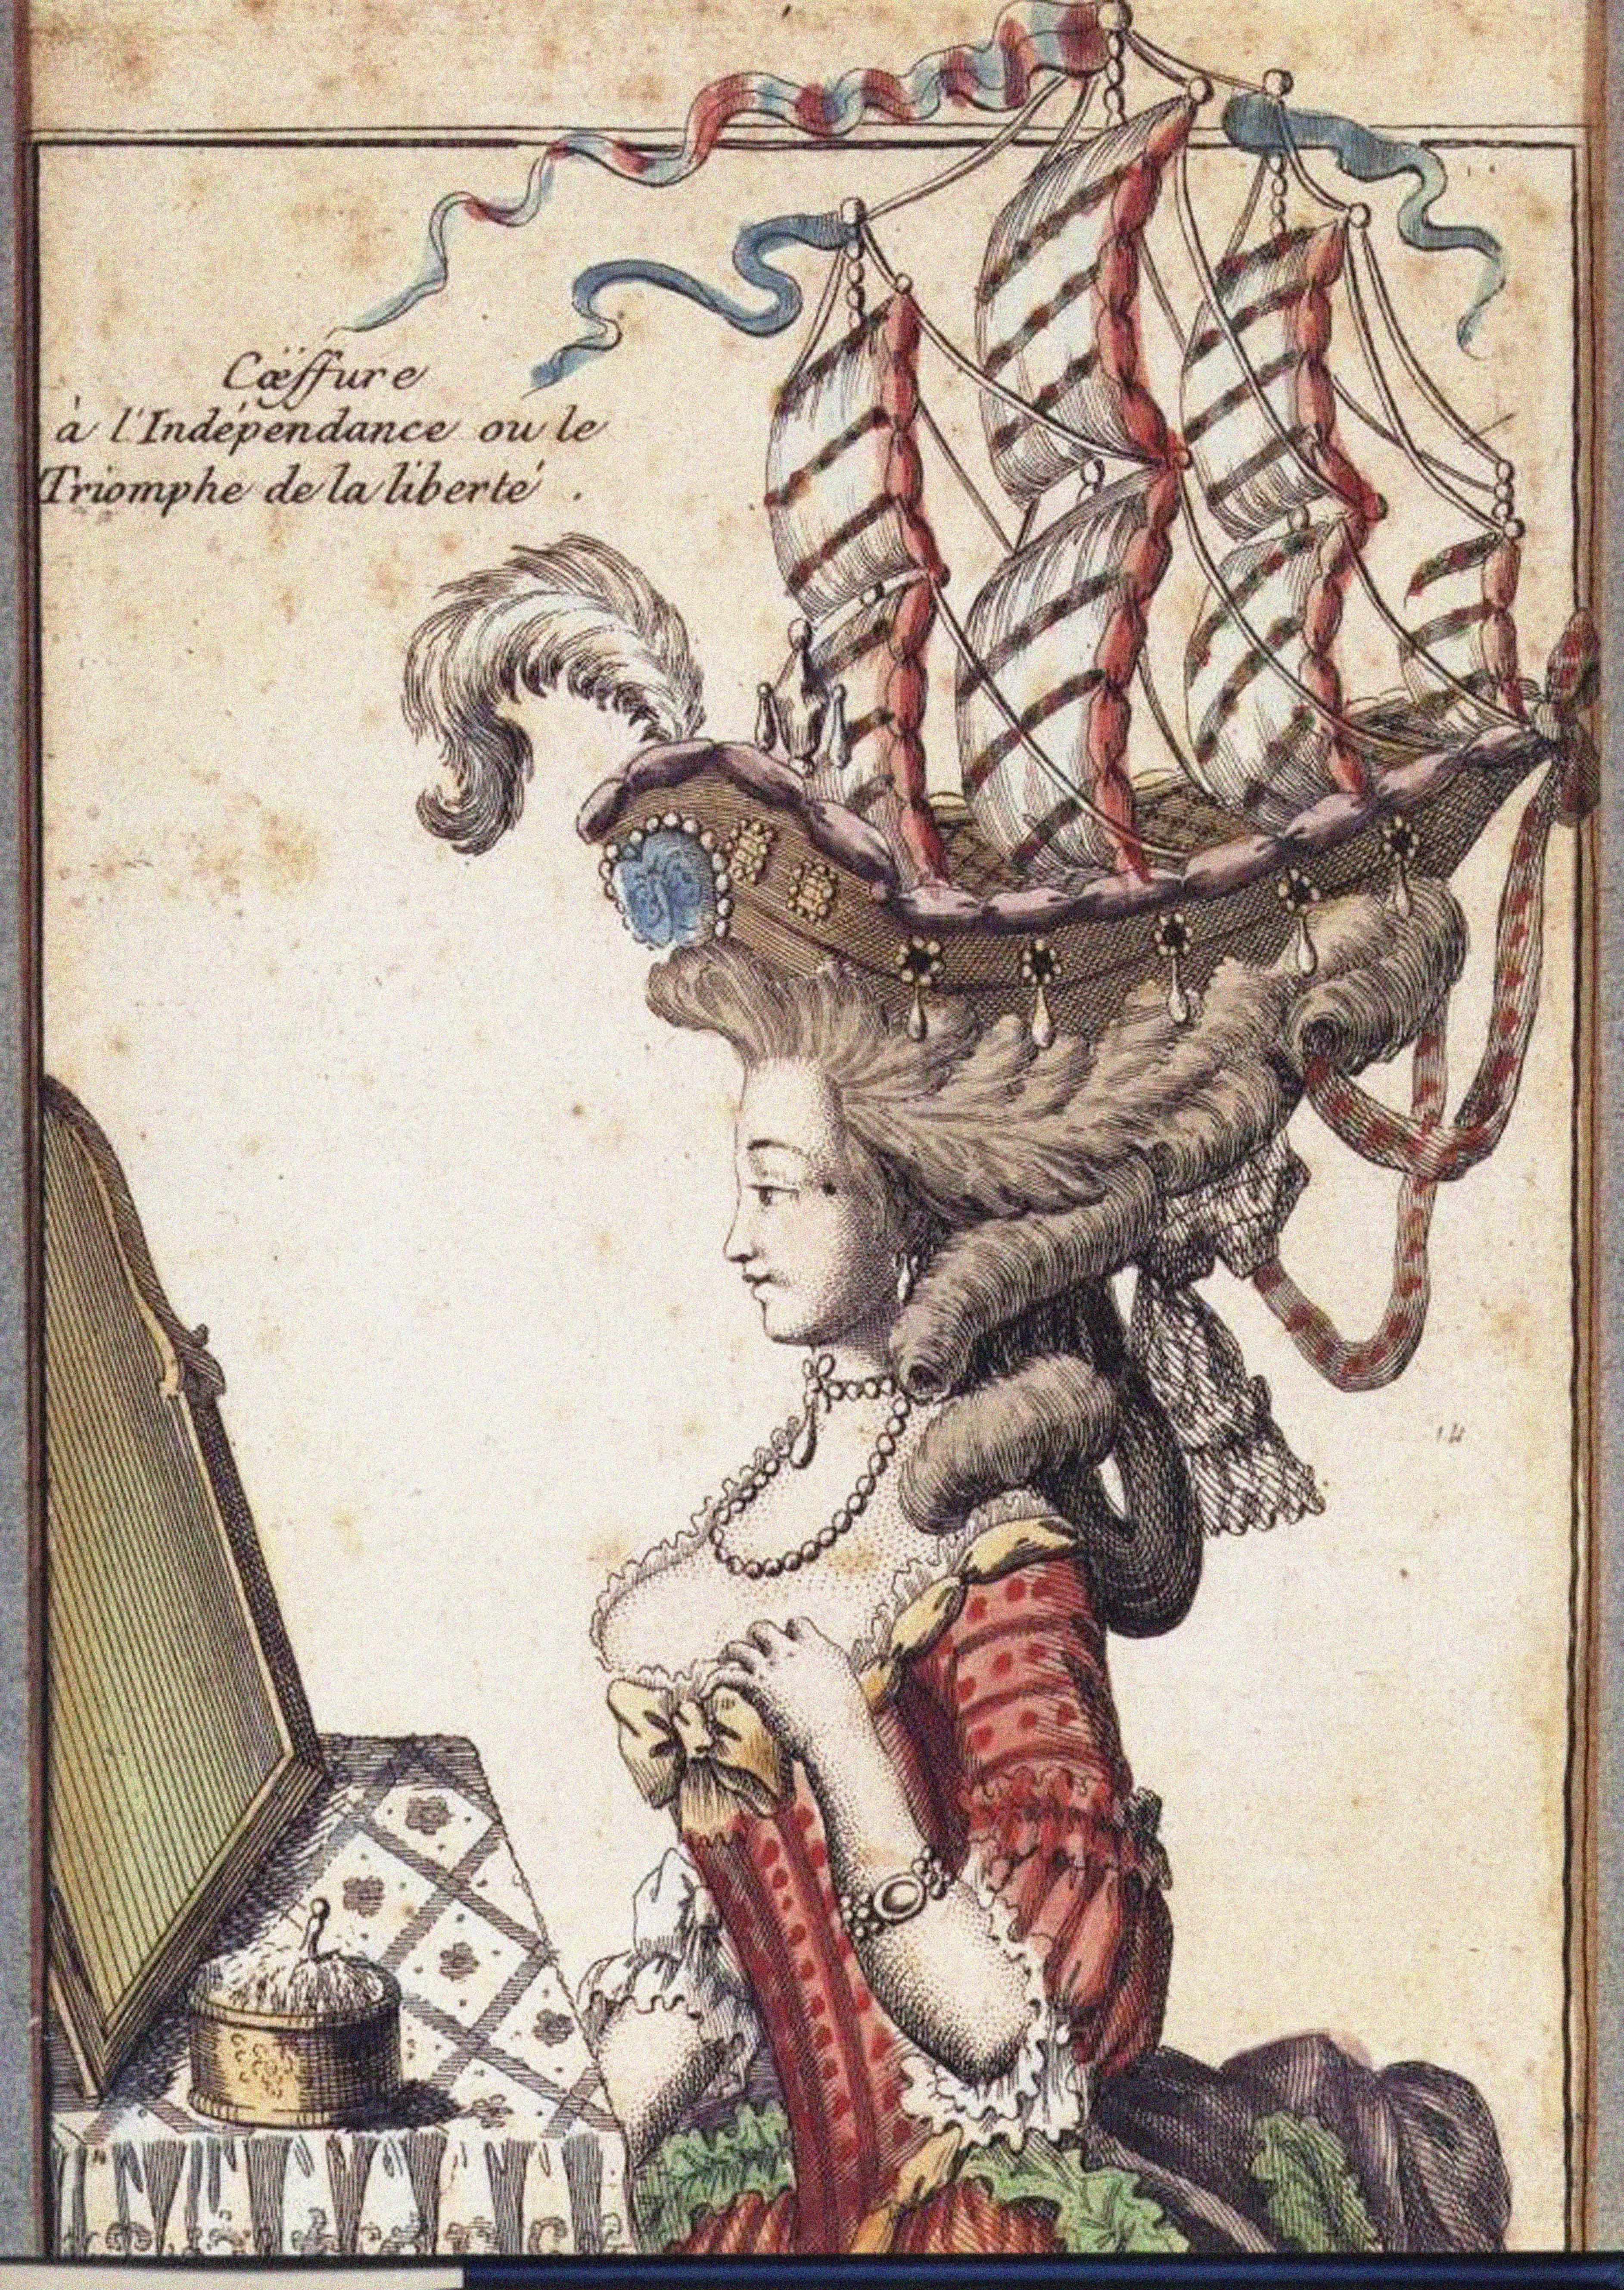 The Lady With A Ship On Her Head Stands As One Of The Most Potent Images Of The Extravagences Of Fashion During The Reign Of Marie Antoinette Canvas Prints Art